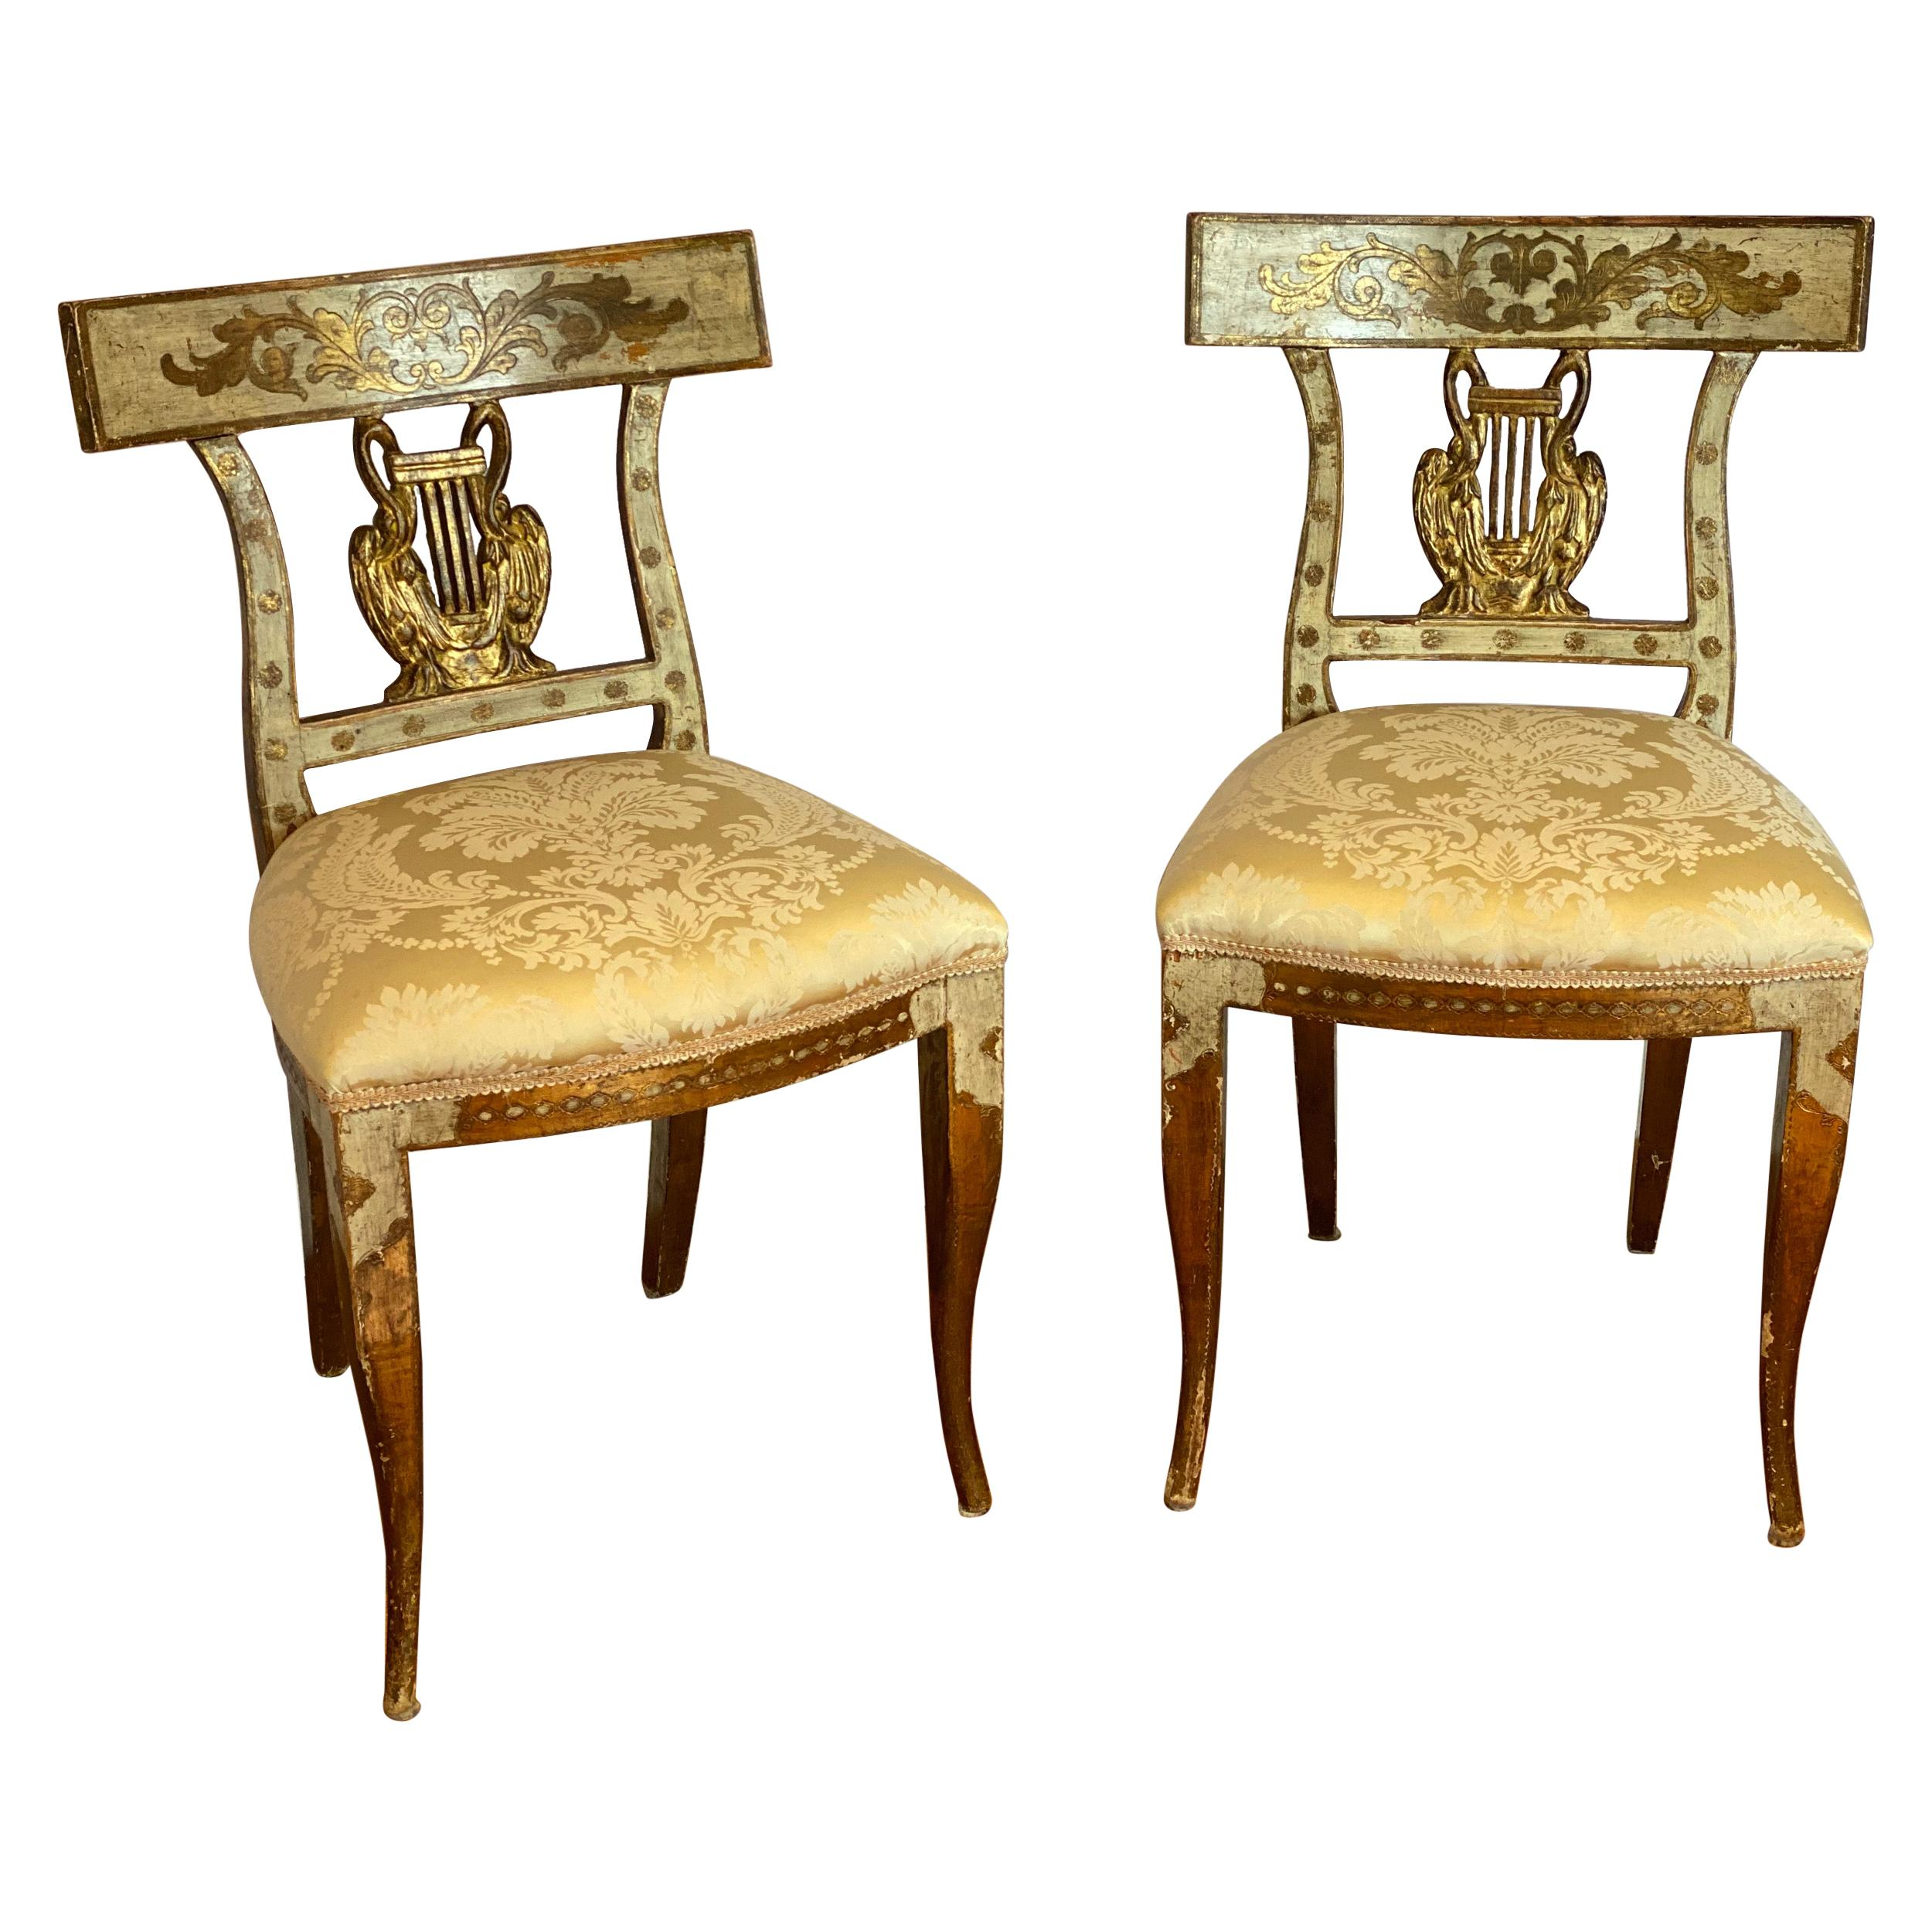 Pair of Italian Neoclassical Gilt-Wood Side Chairs with Swans and Lyres